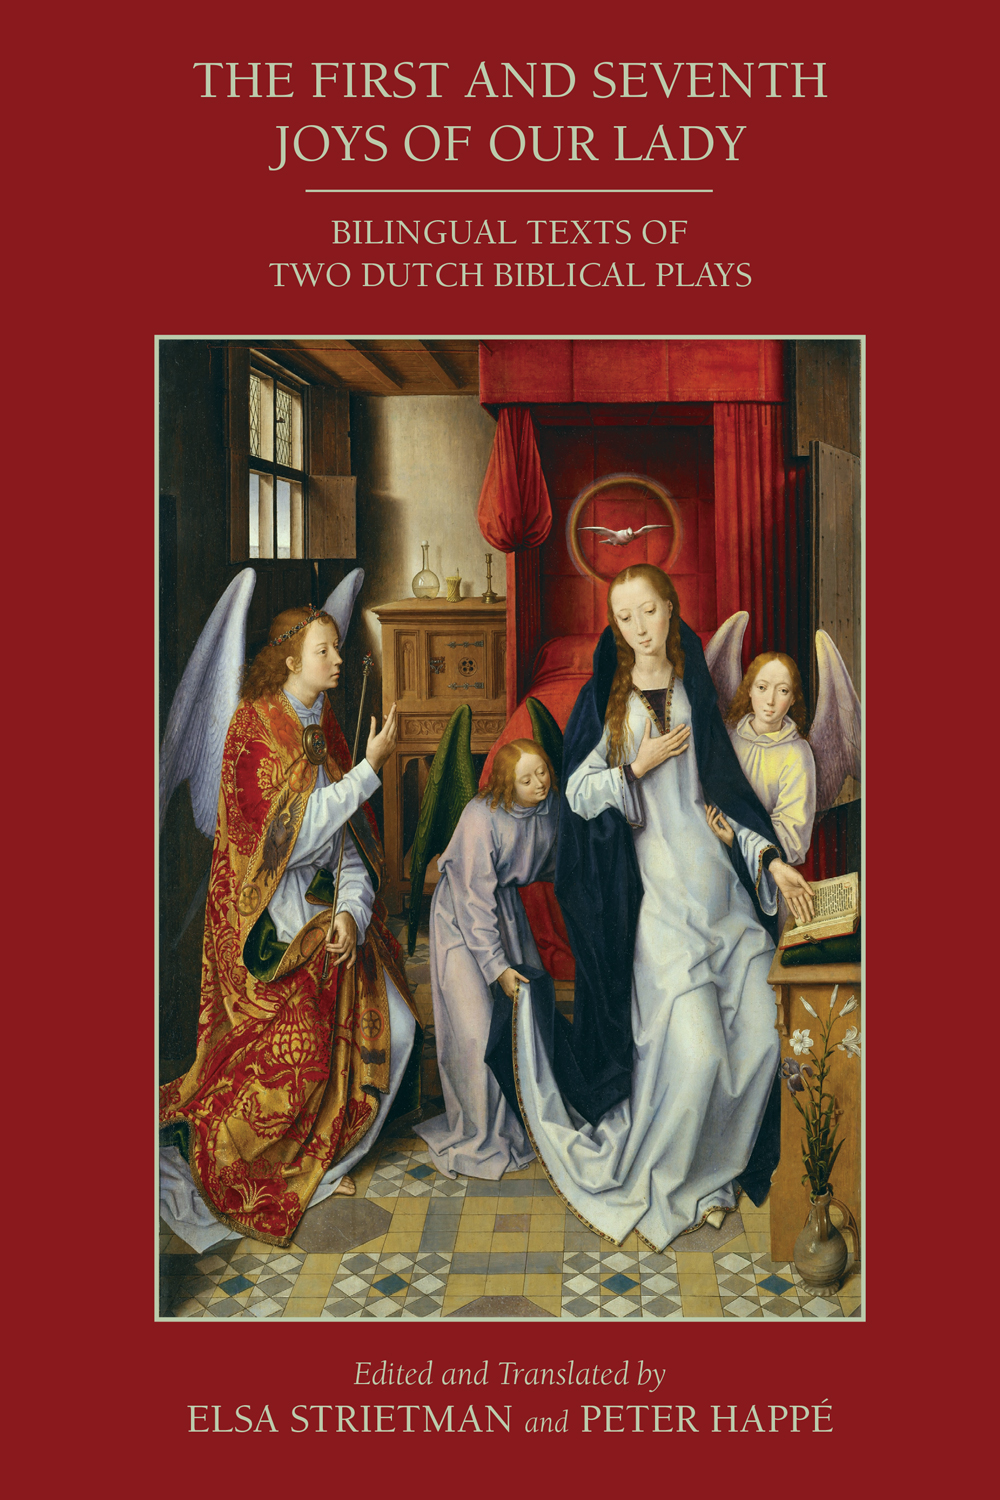 First and Seventh Joys of Our Lady: Bilingual Texts of Two